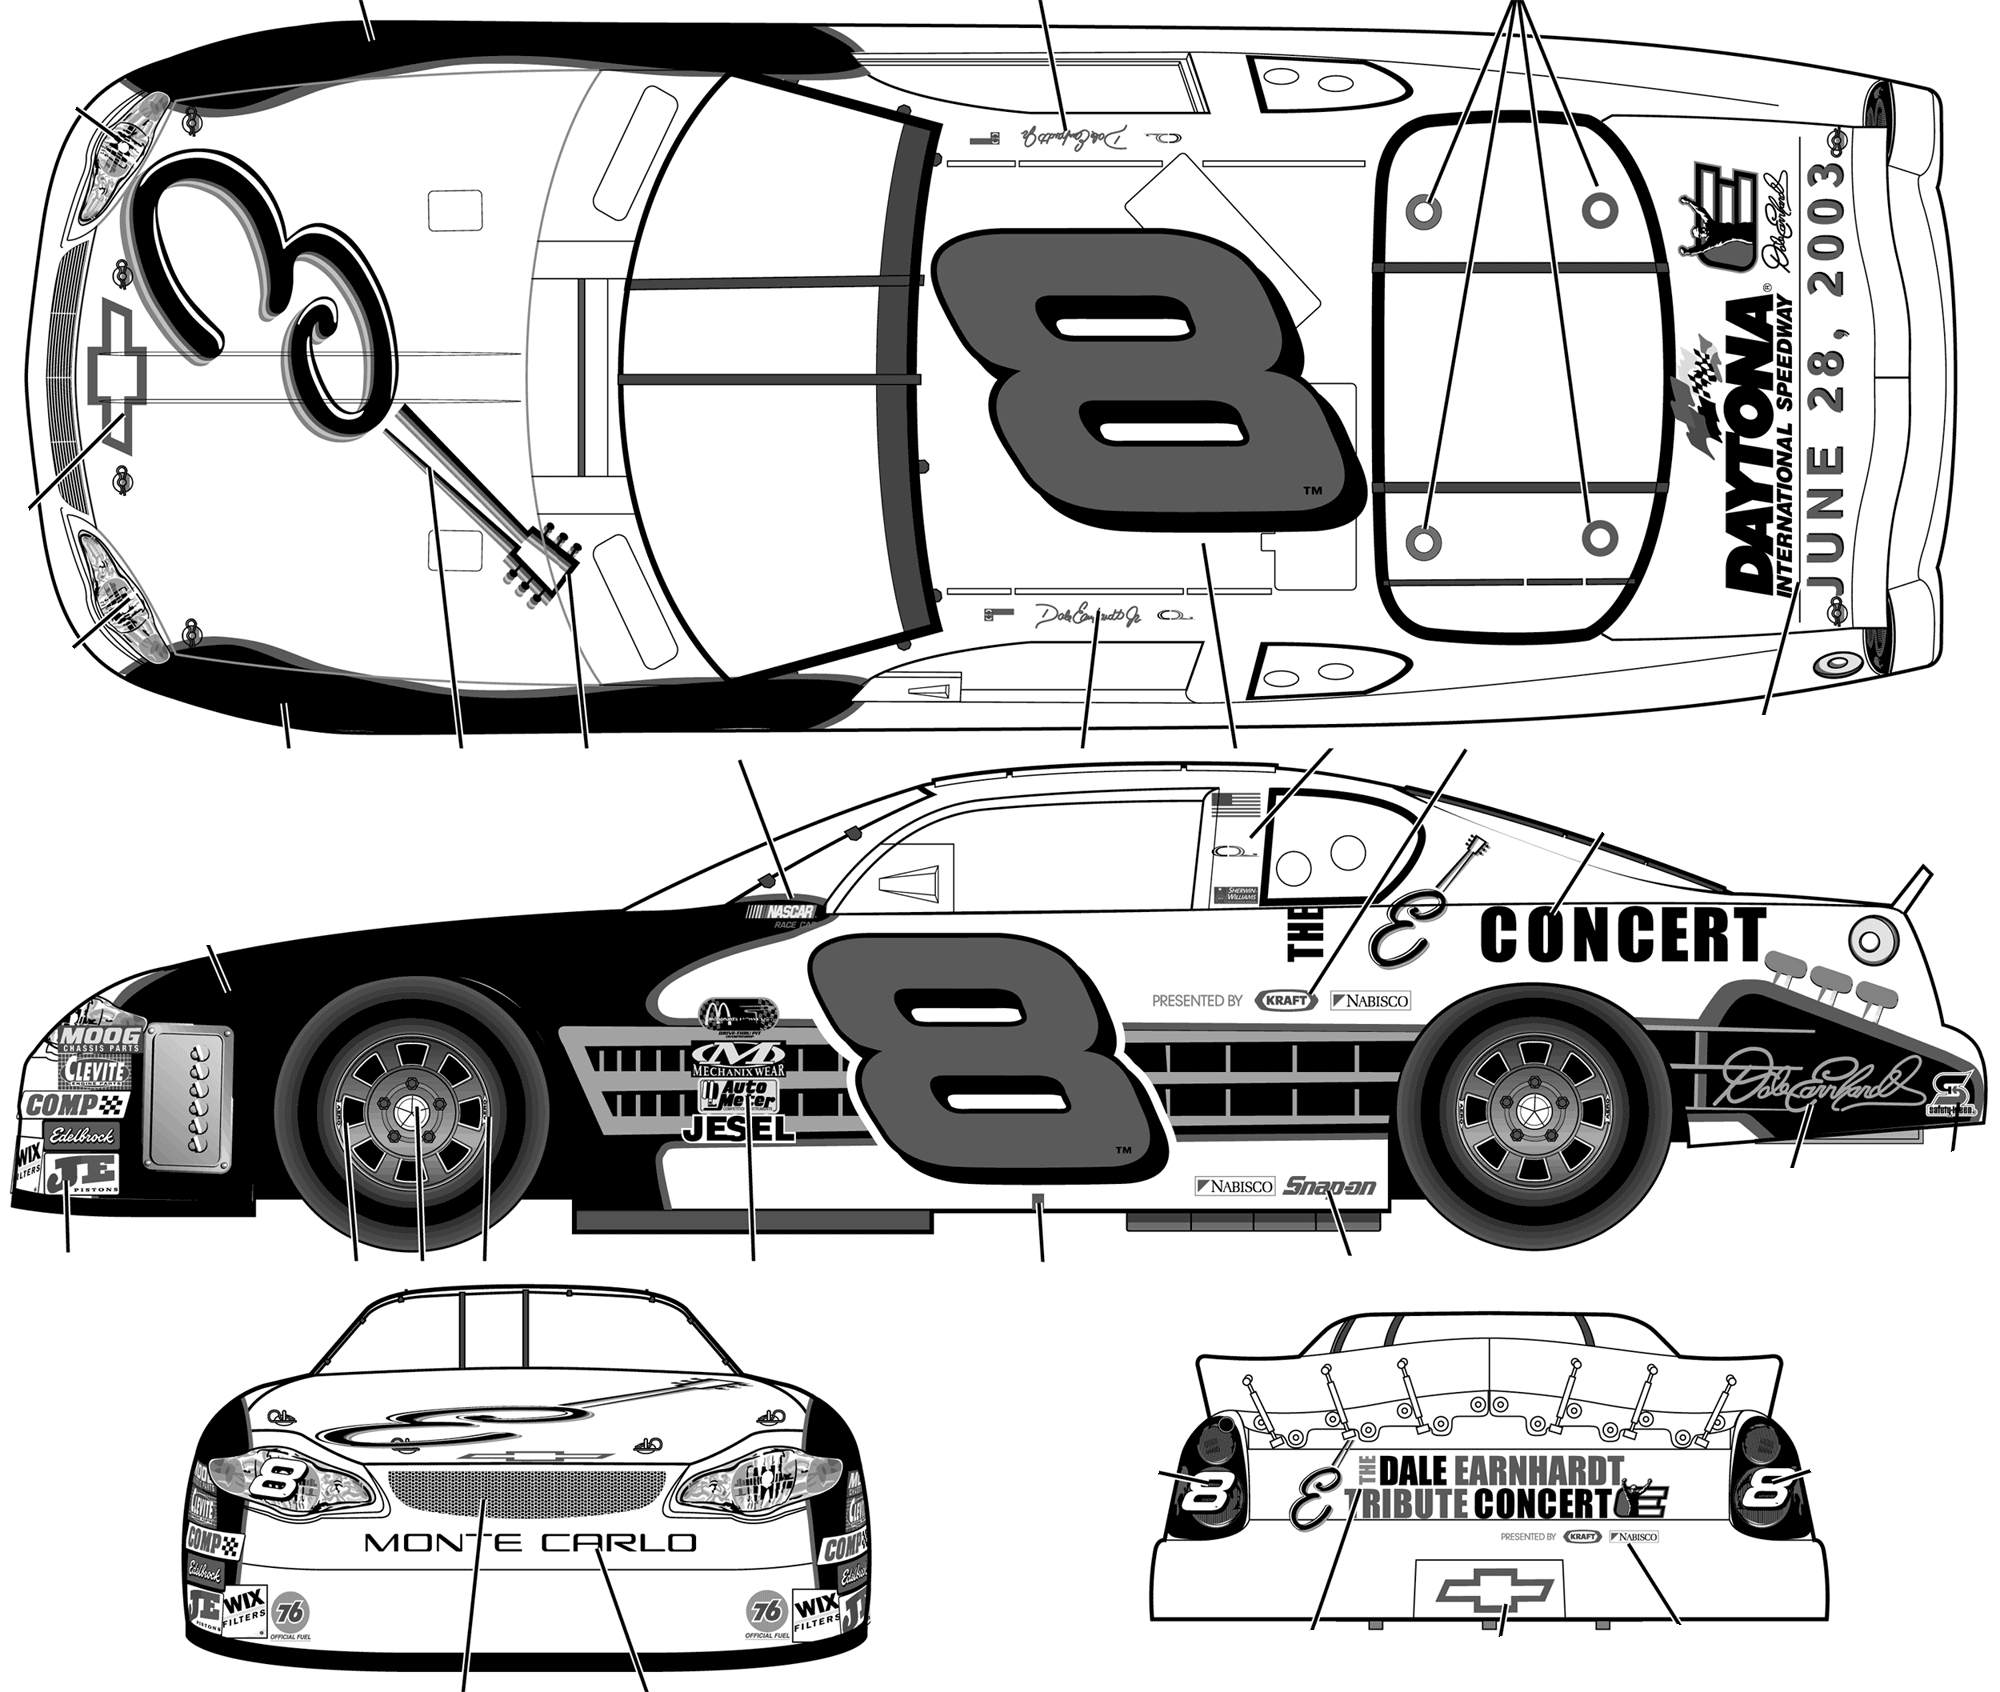 The newest nascar blueprint car pictures car canyon nascar the newest nascar blueprint car pictures car canyon malvernweather Image collections